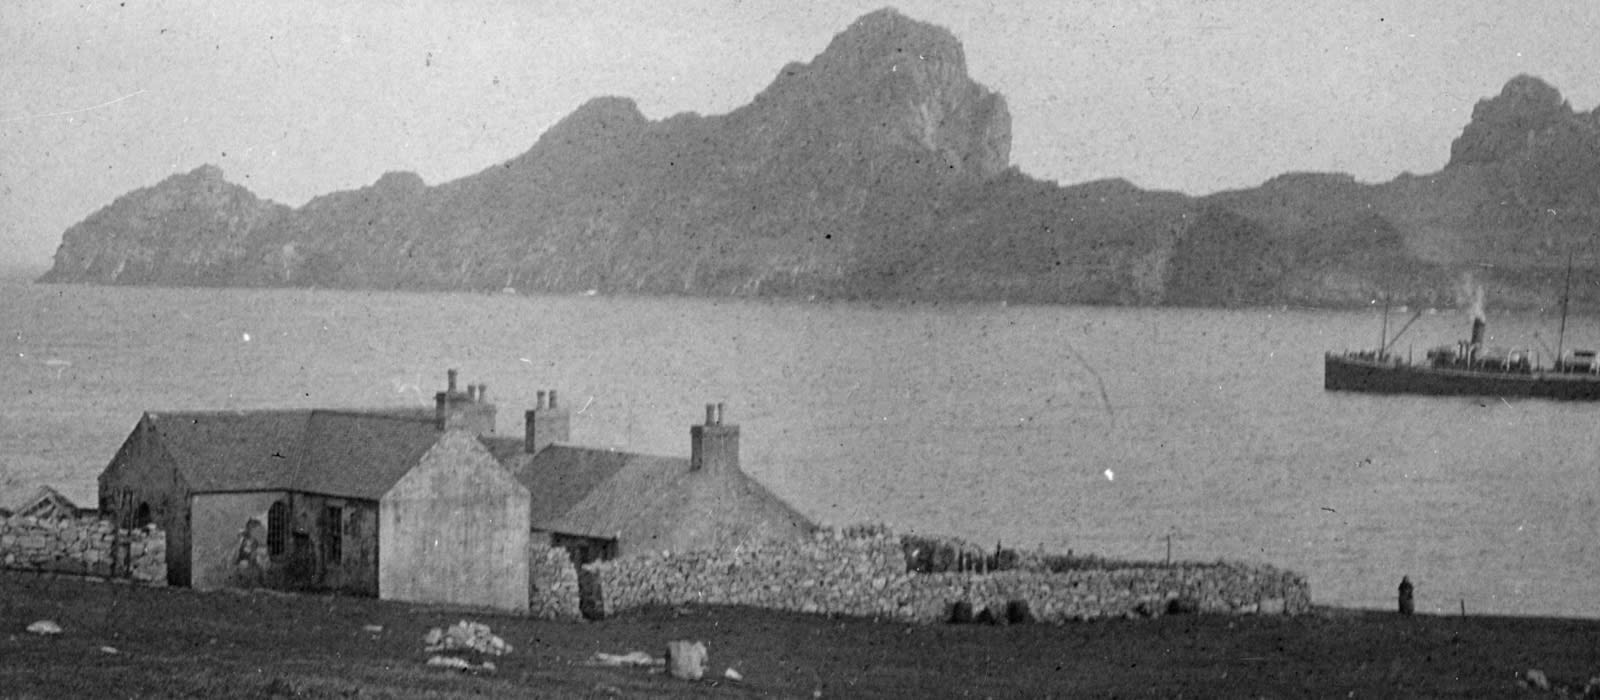 St Kilda church and manse